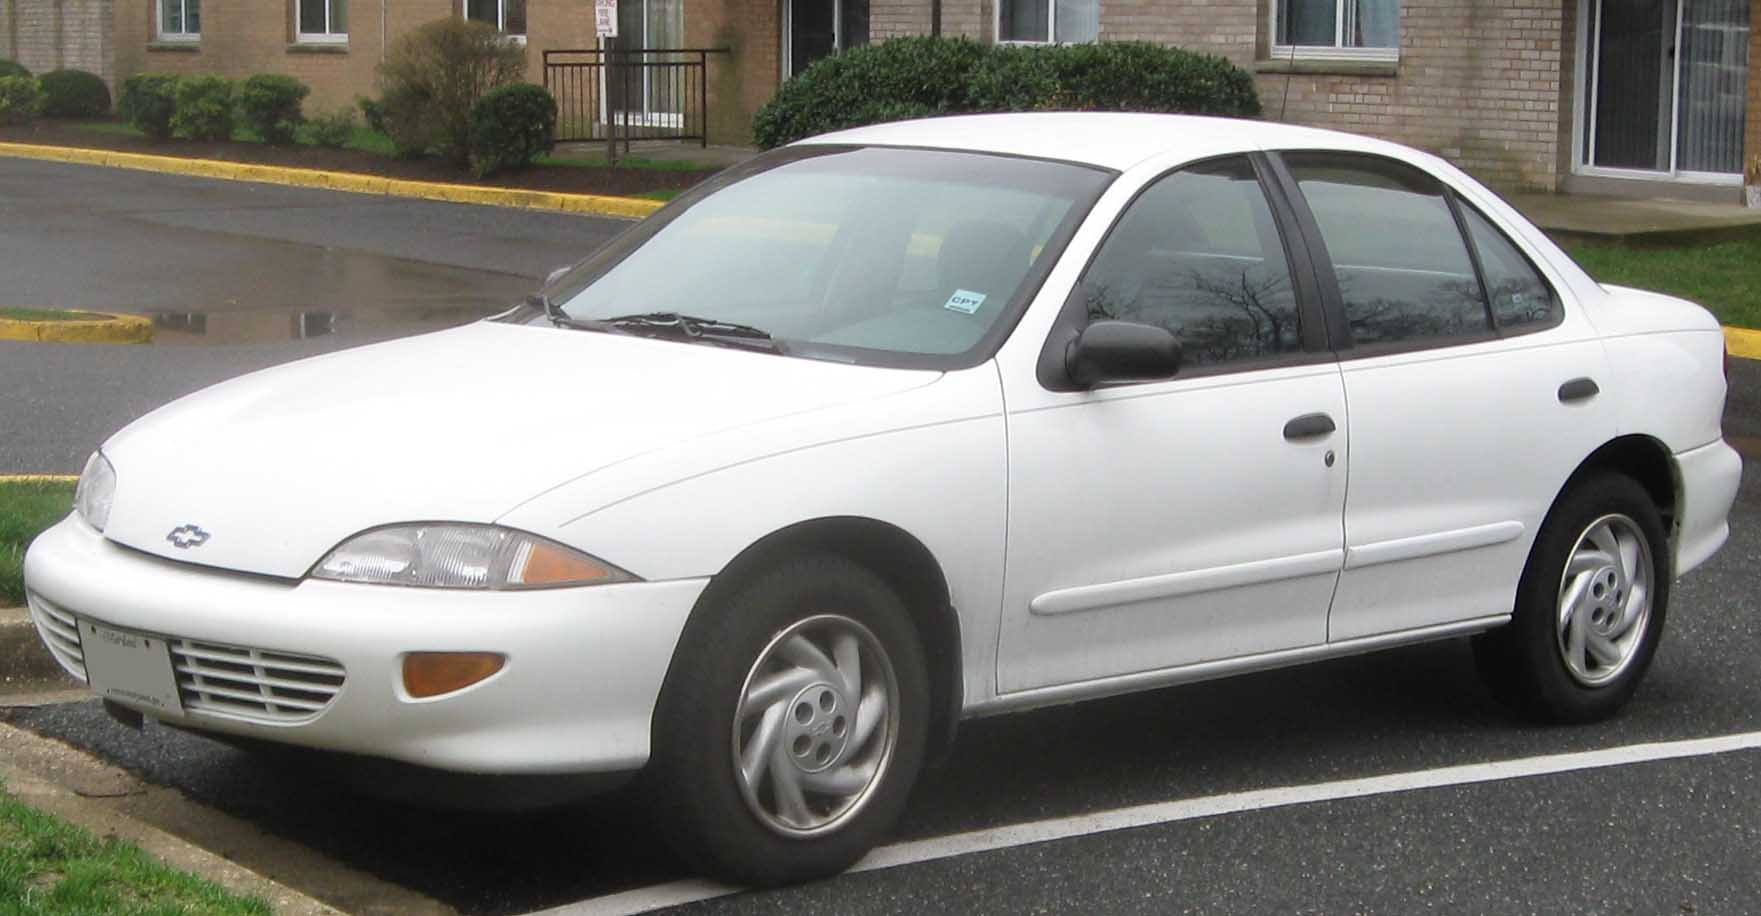 chevrolet cavalier coupe (j) 1995 pictures #2